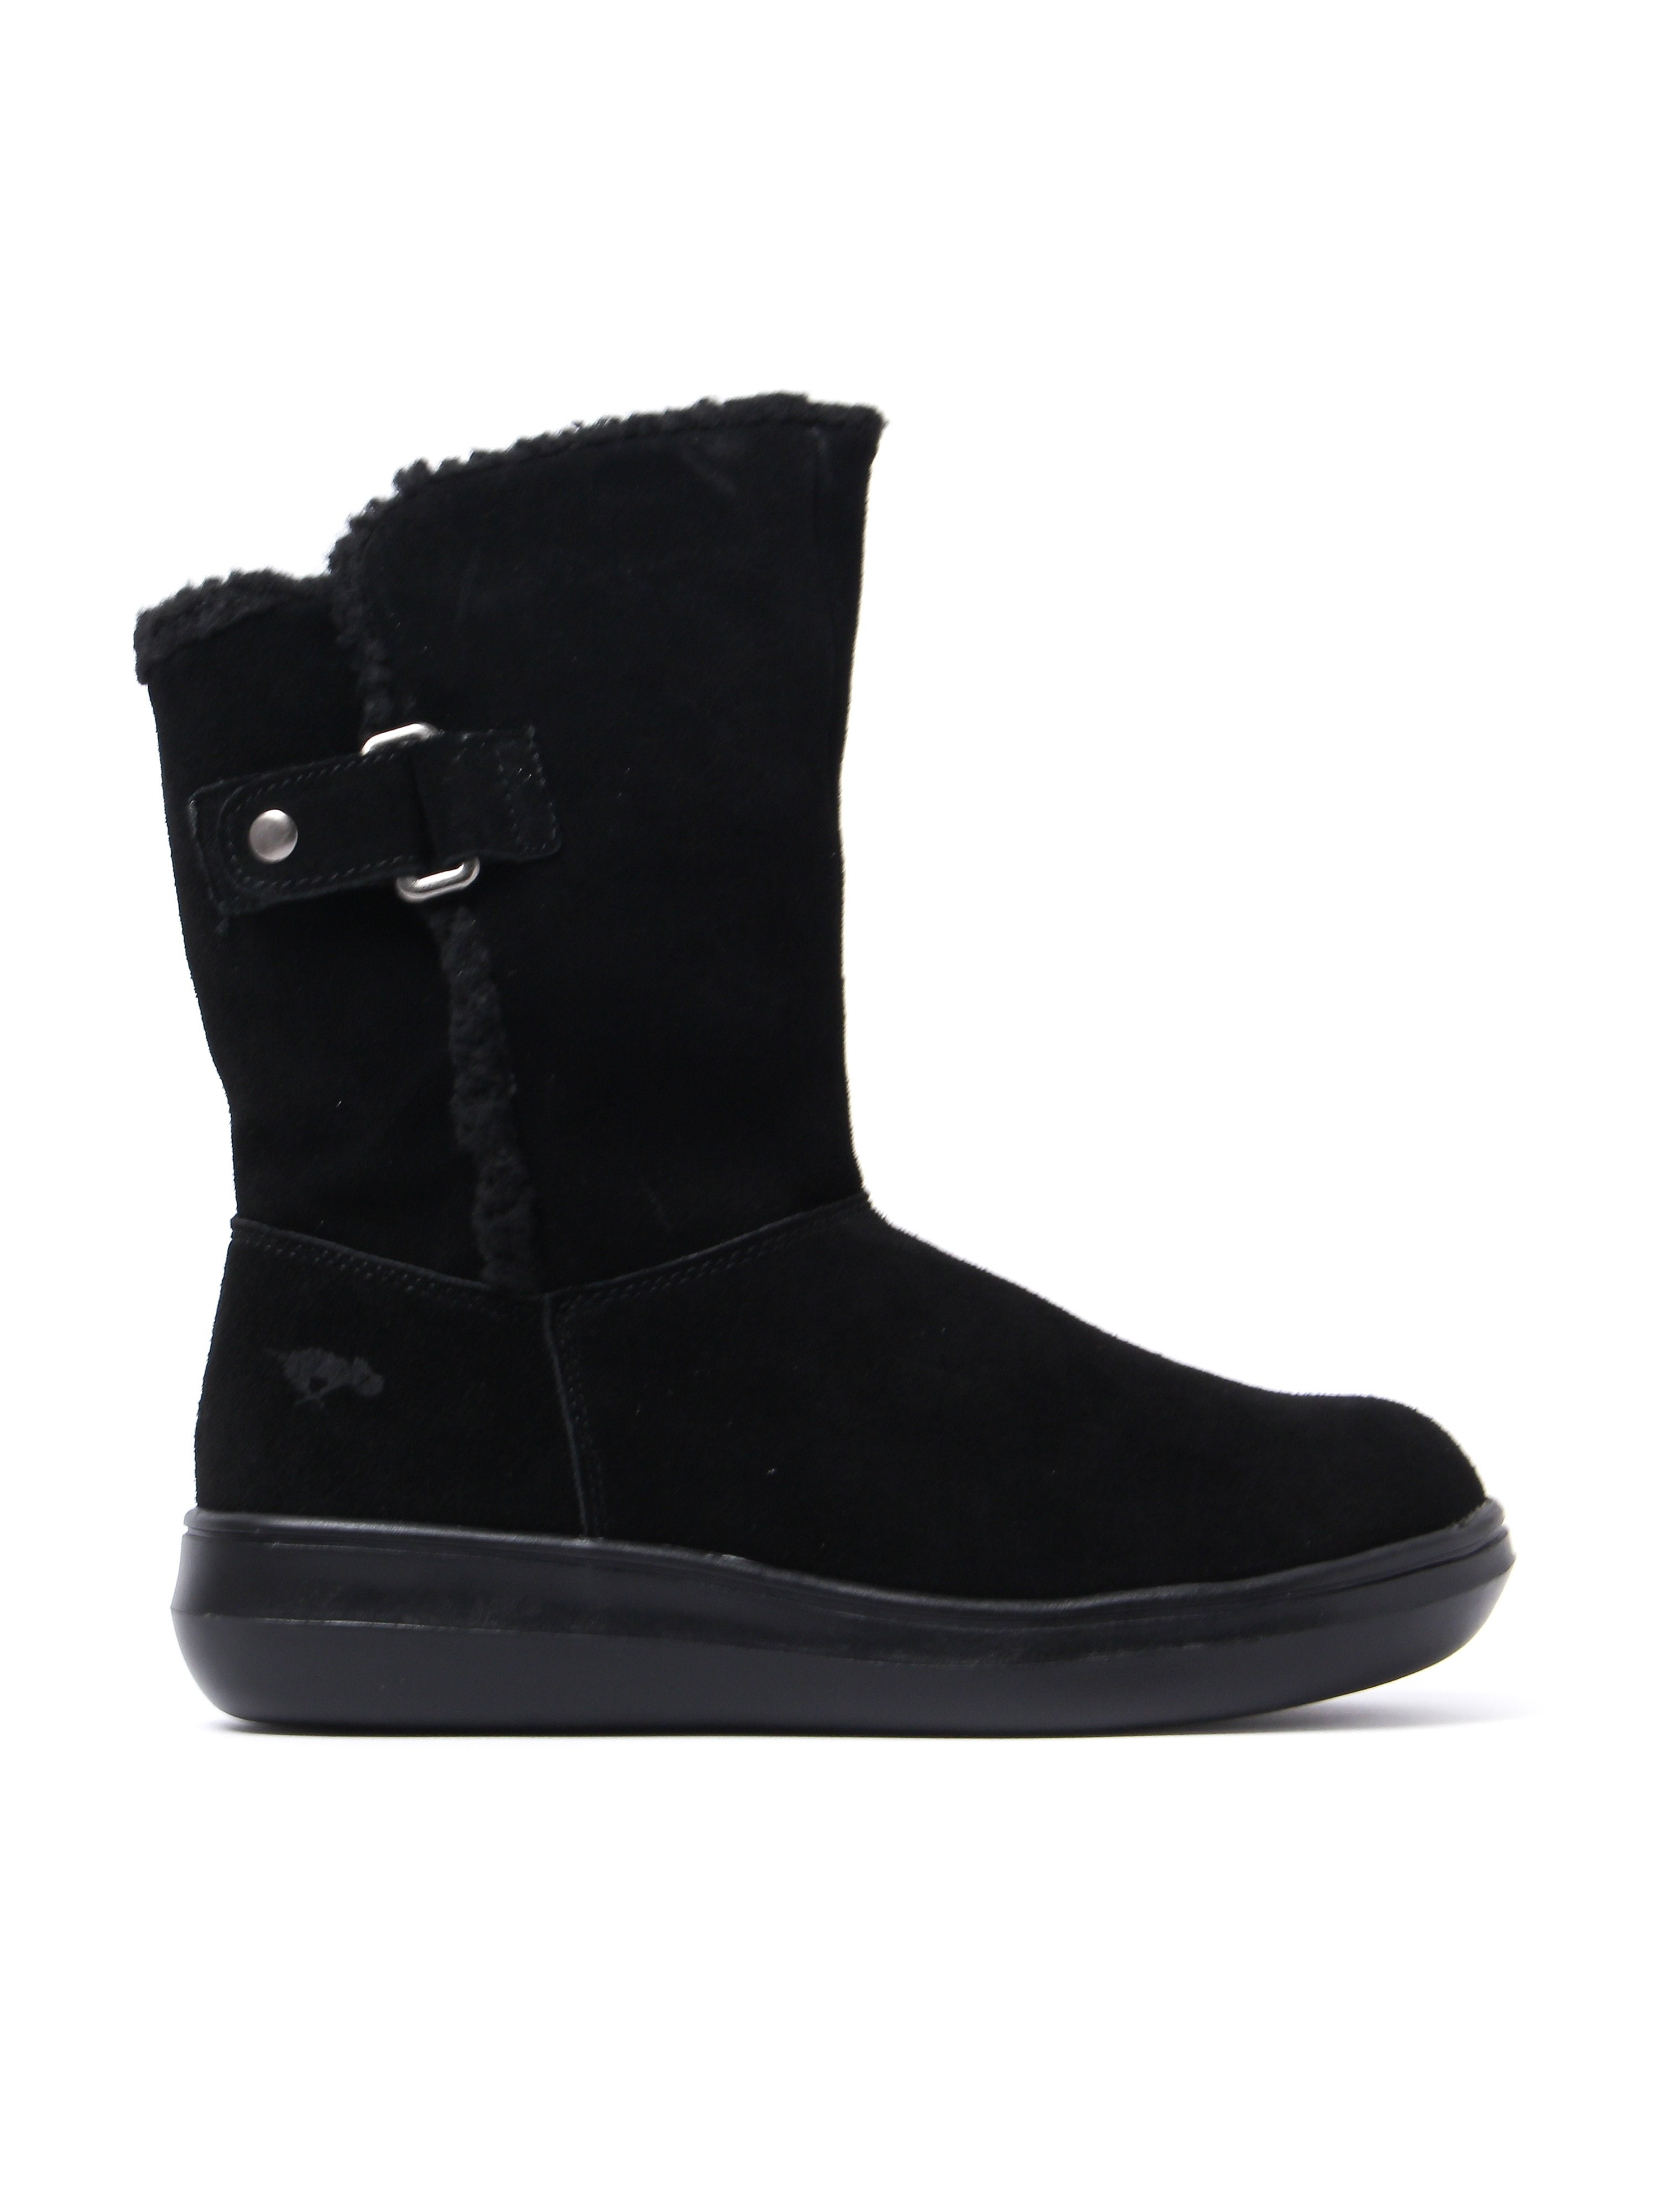 Rocket Dog Women's Staples Boots - Black Suede